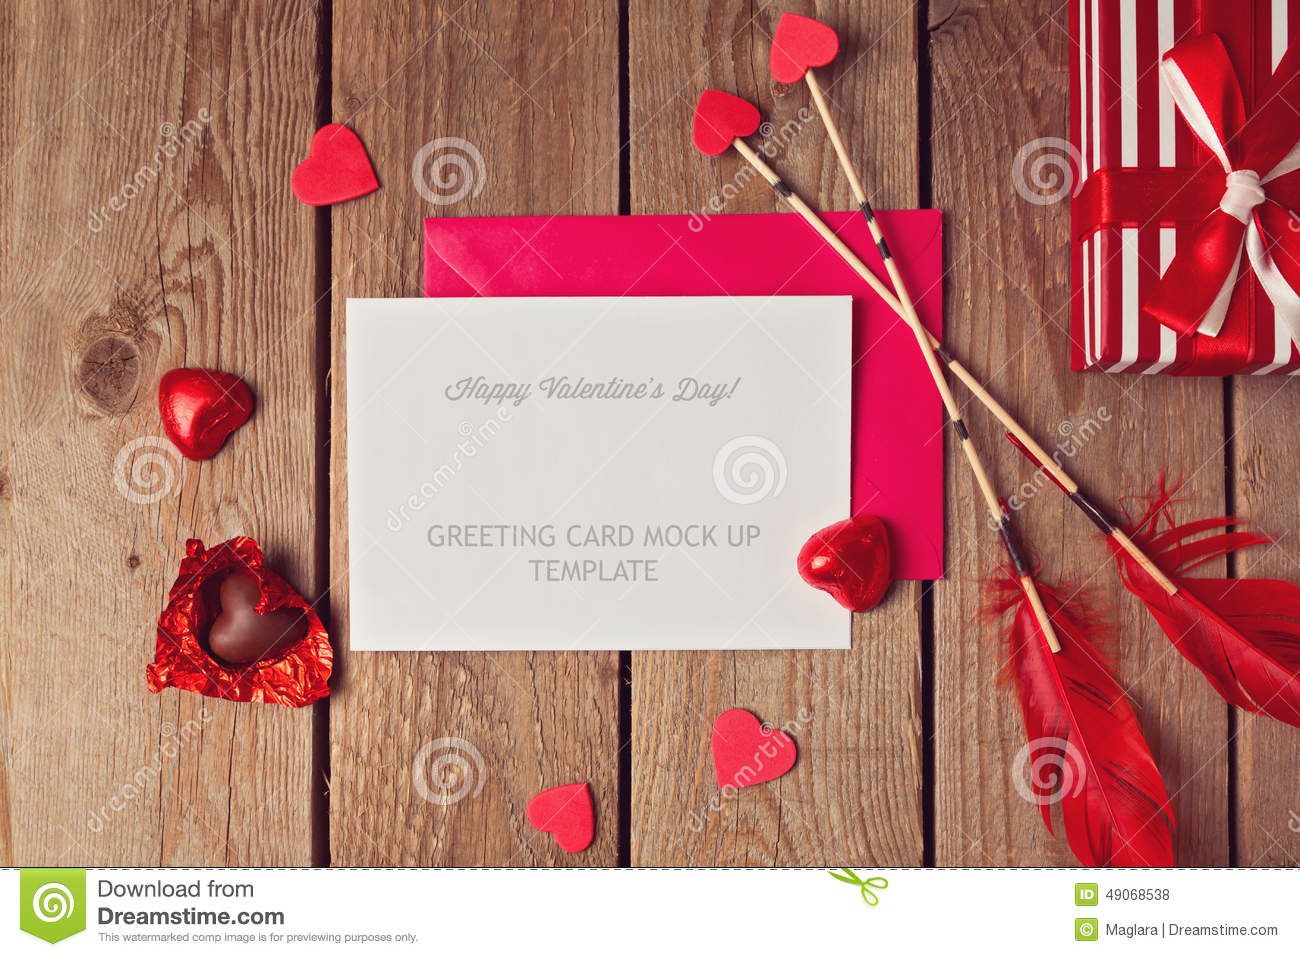 Valentine S Day Greeting Card Mock Up Stock Photo Image Of Pair